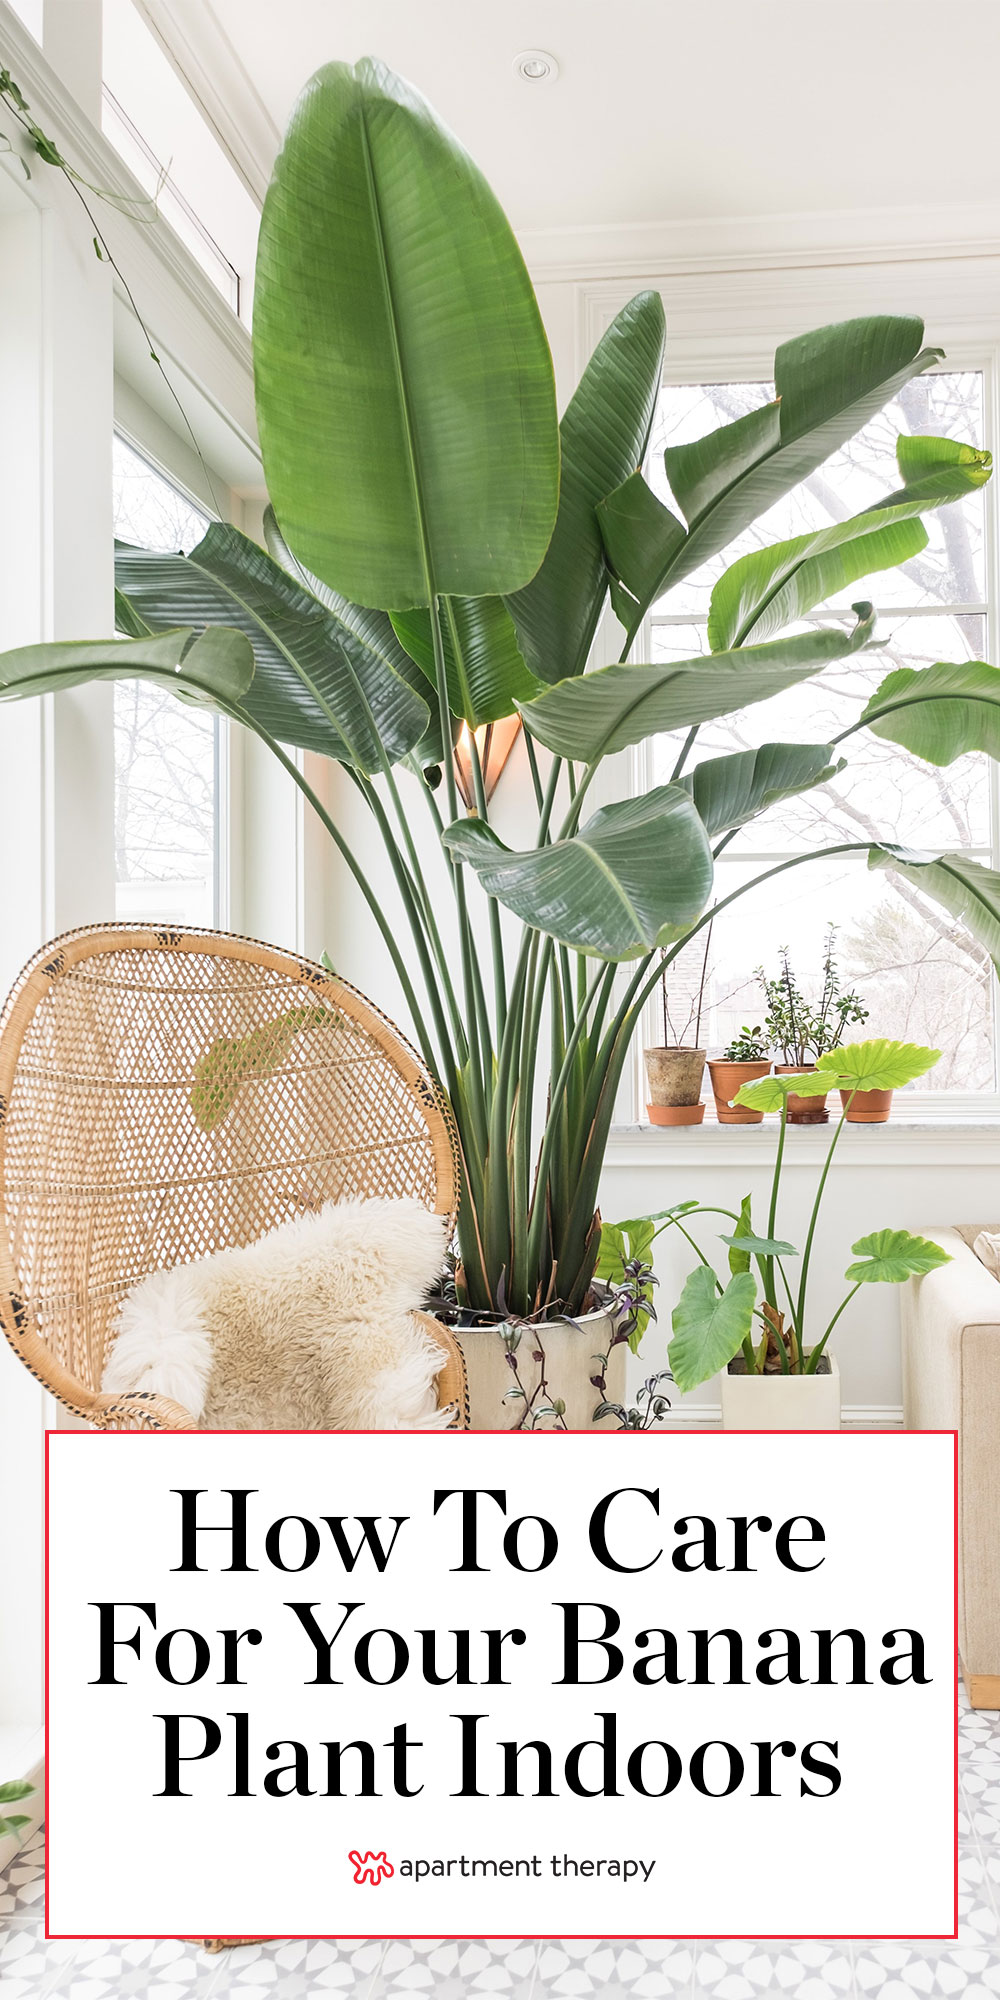 Bird Of Paradise Plant Care How To Grow Maintain Birds Of Paradise Apartment Therapy